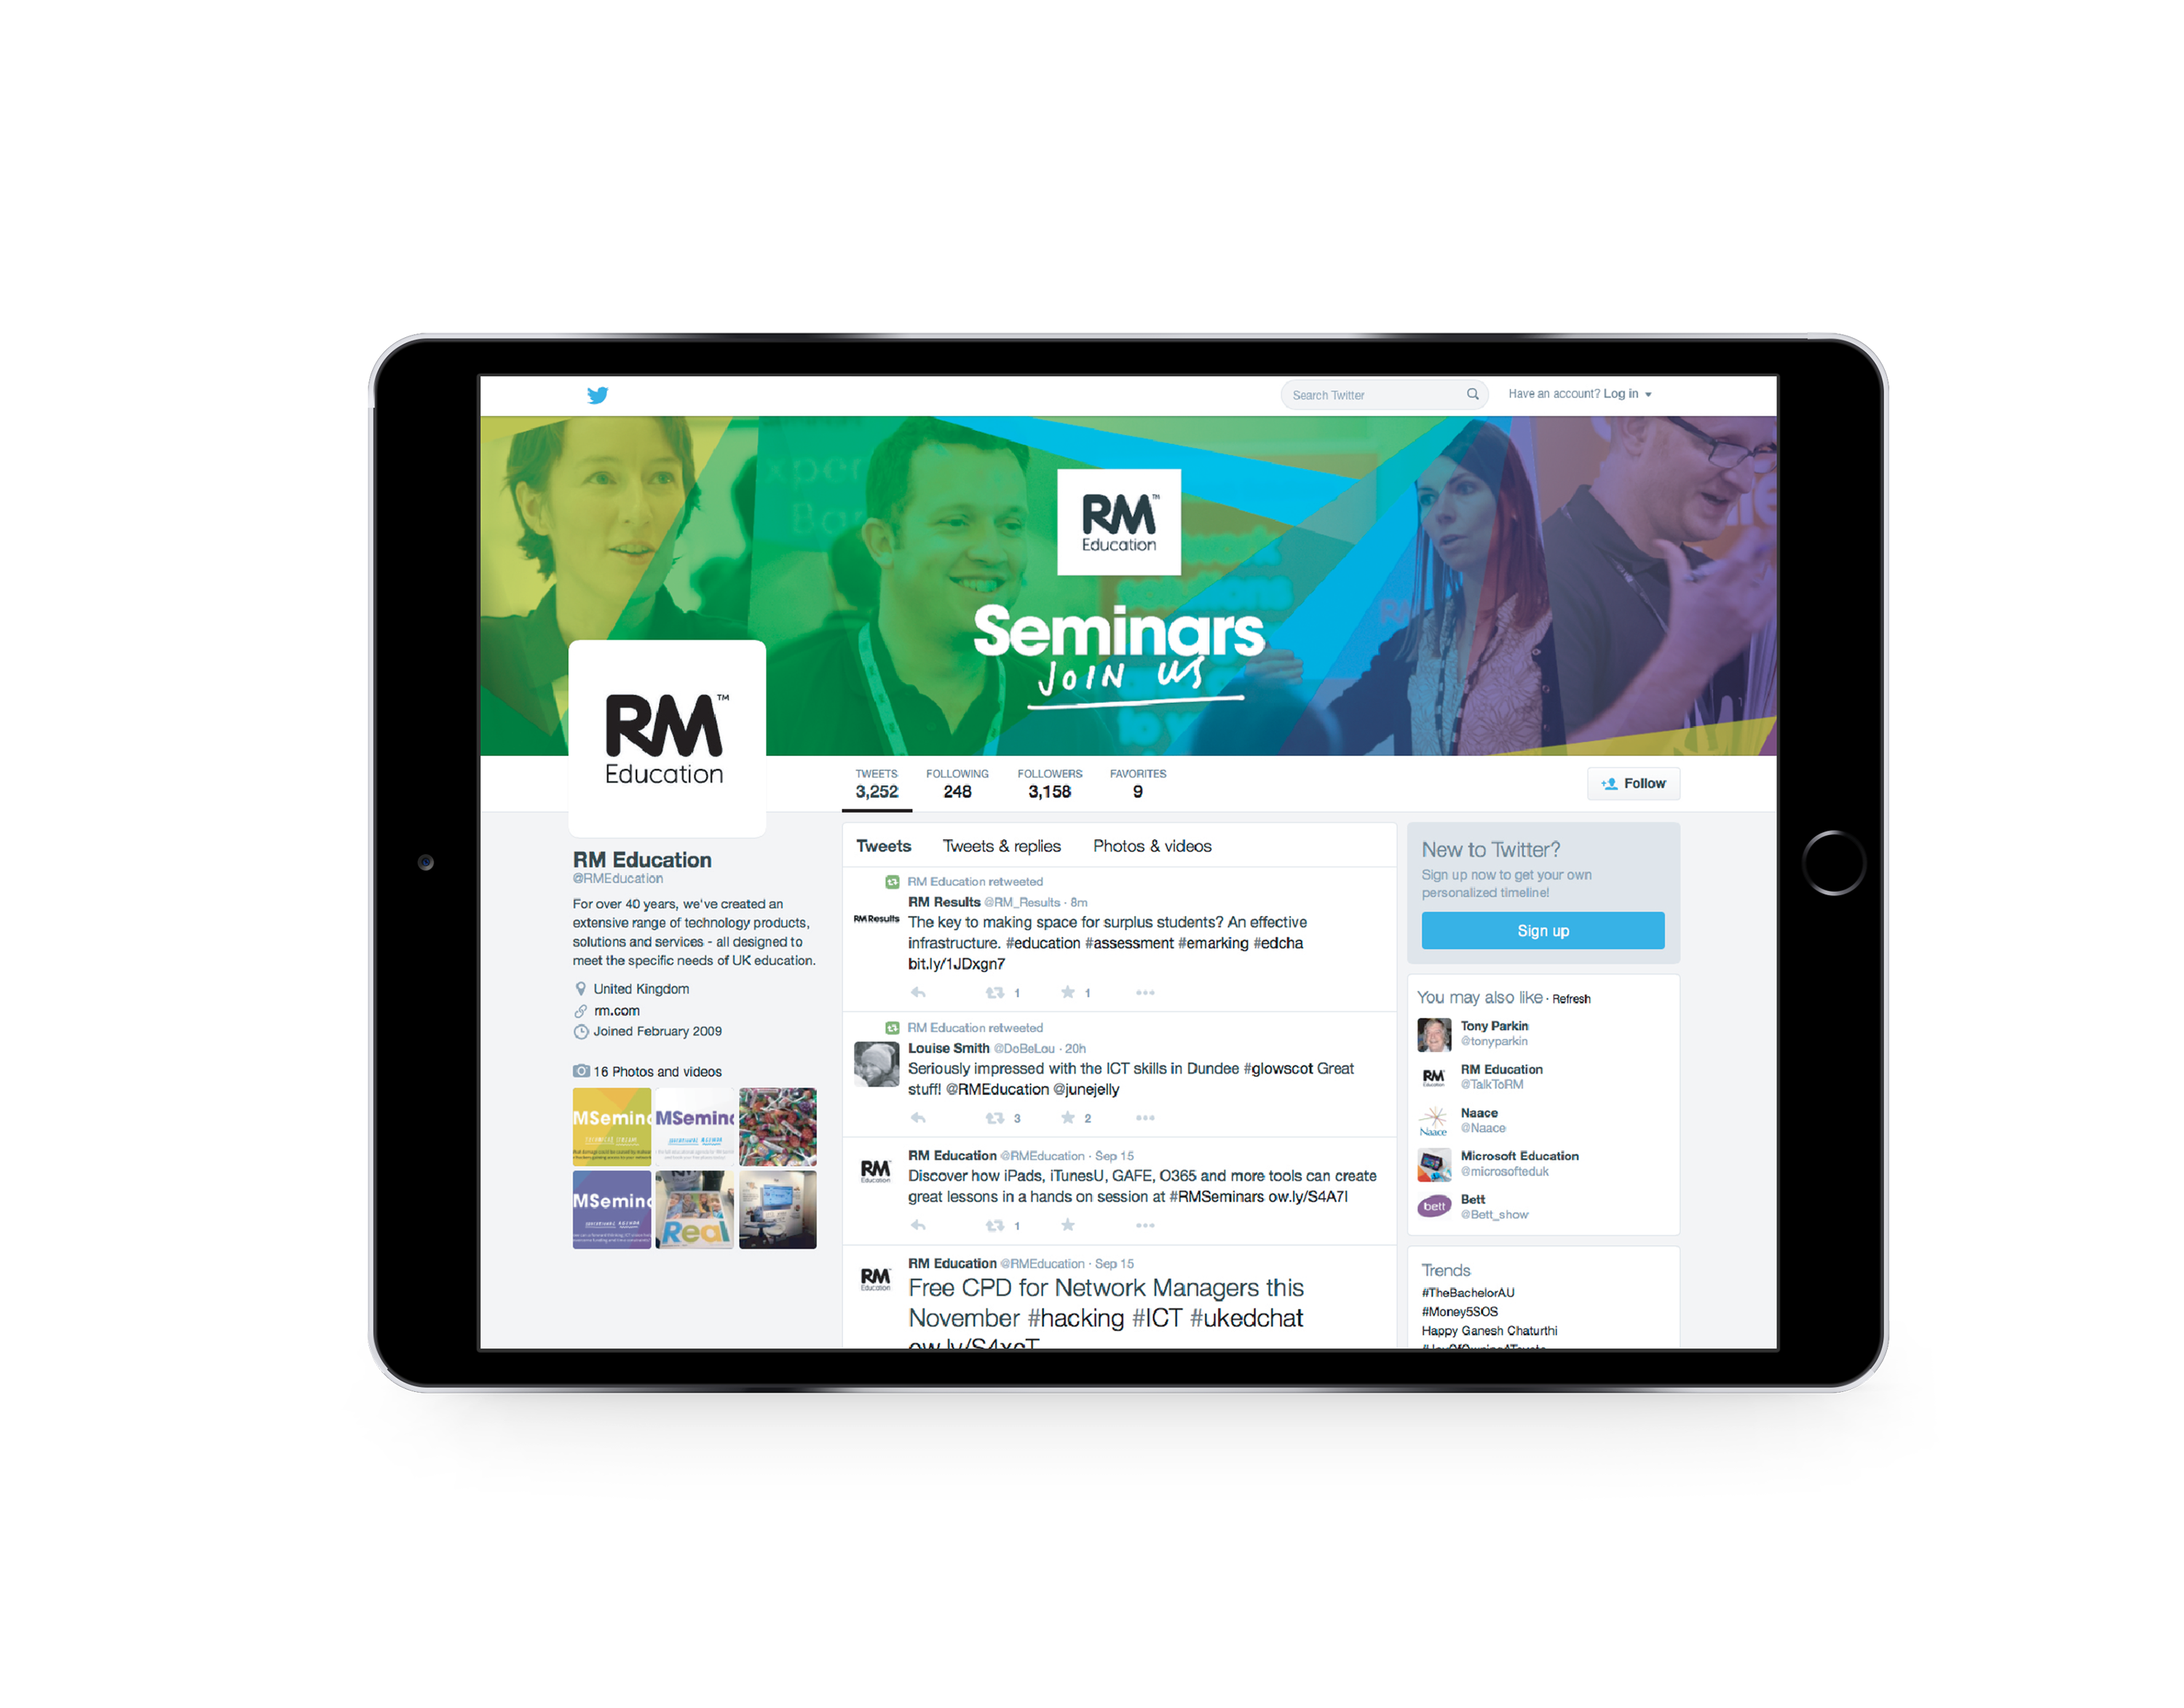 tablet with twitter home page showing RM Seminars banner and words Join Us